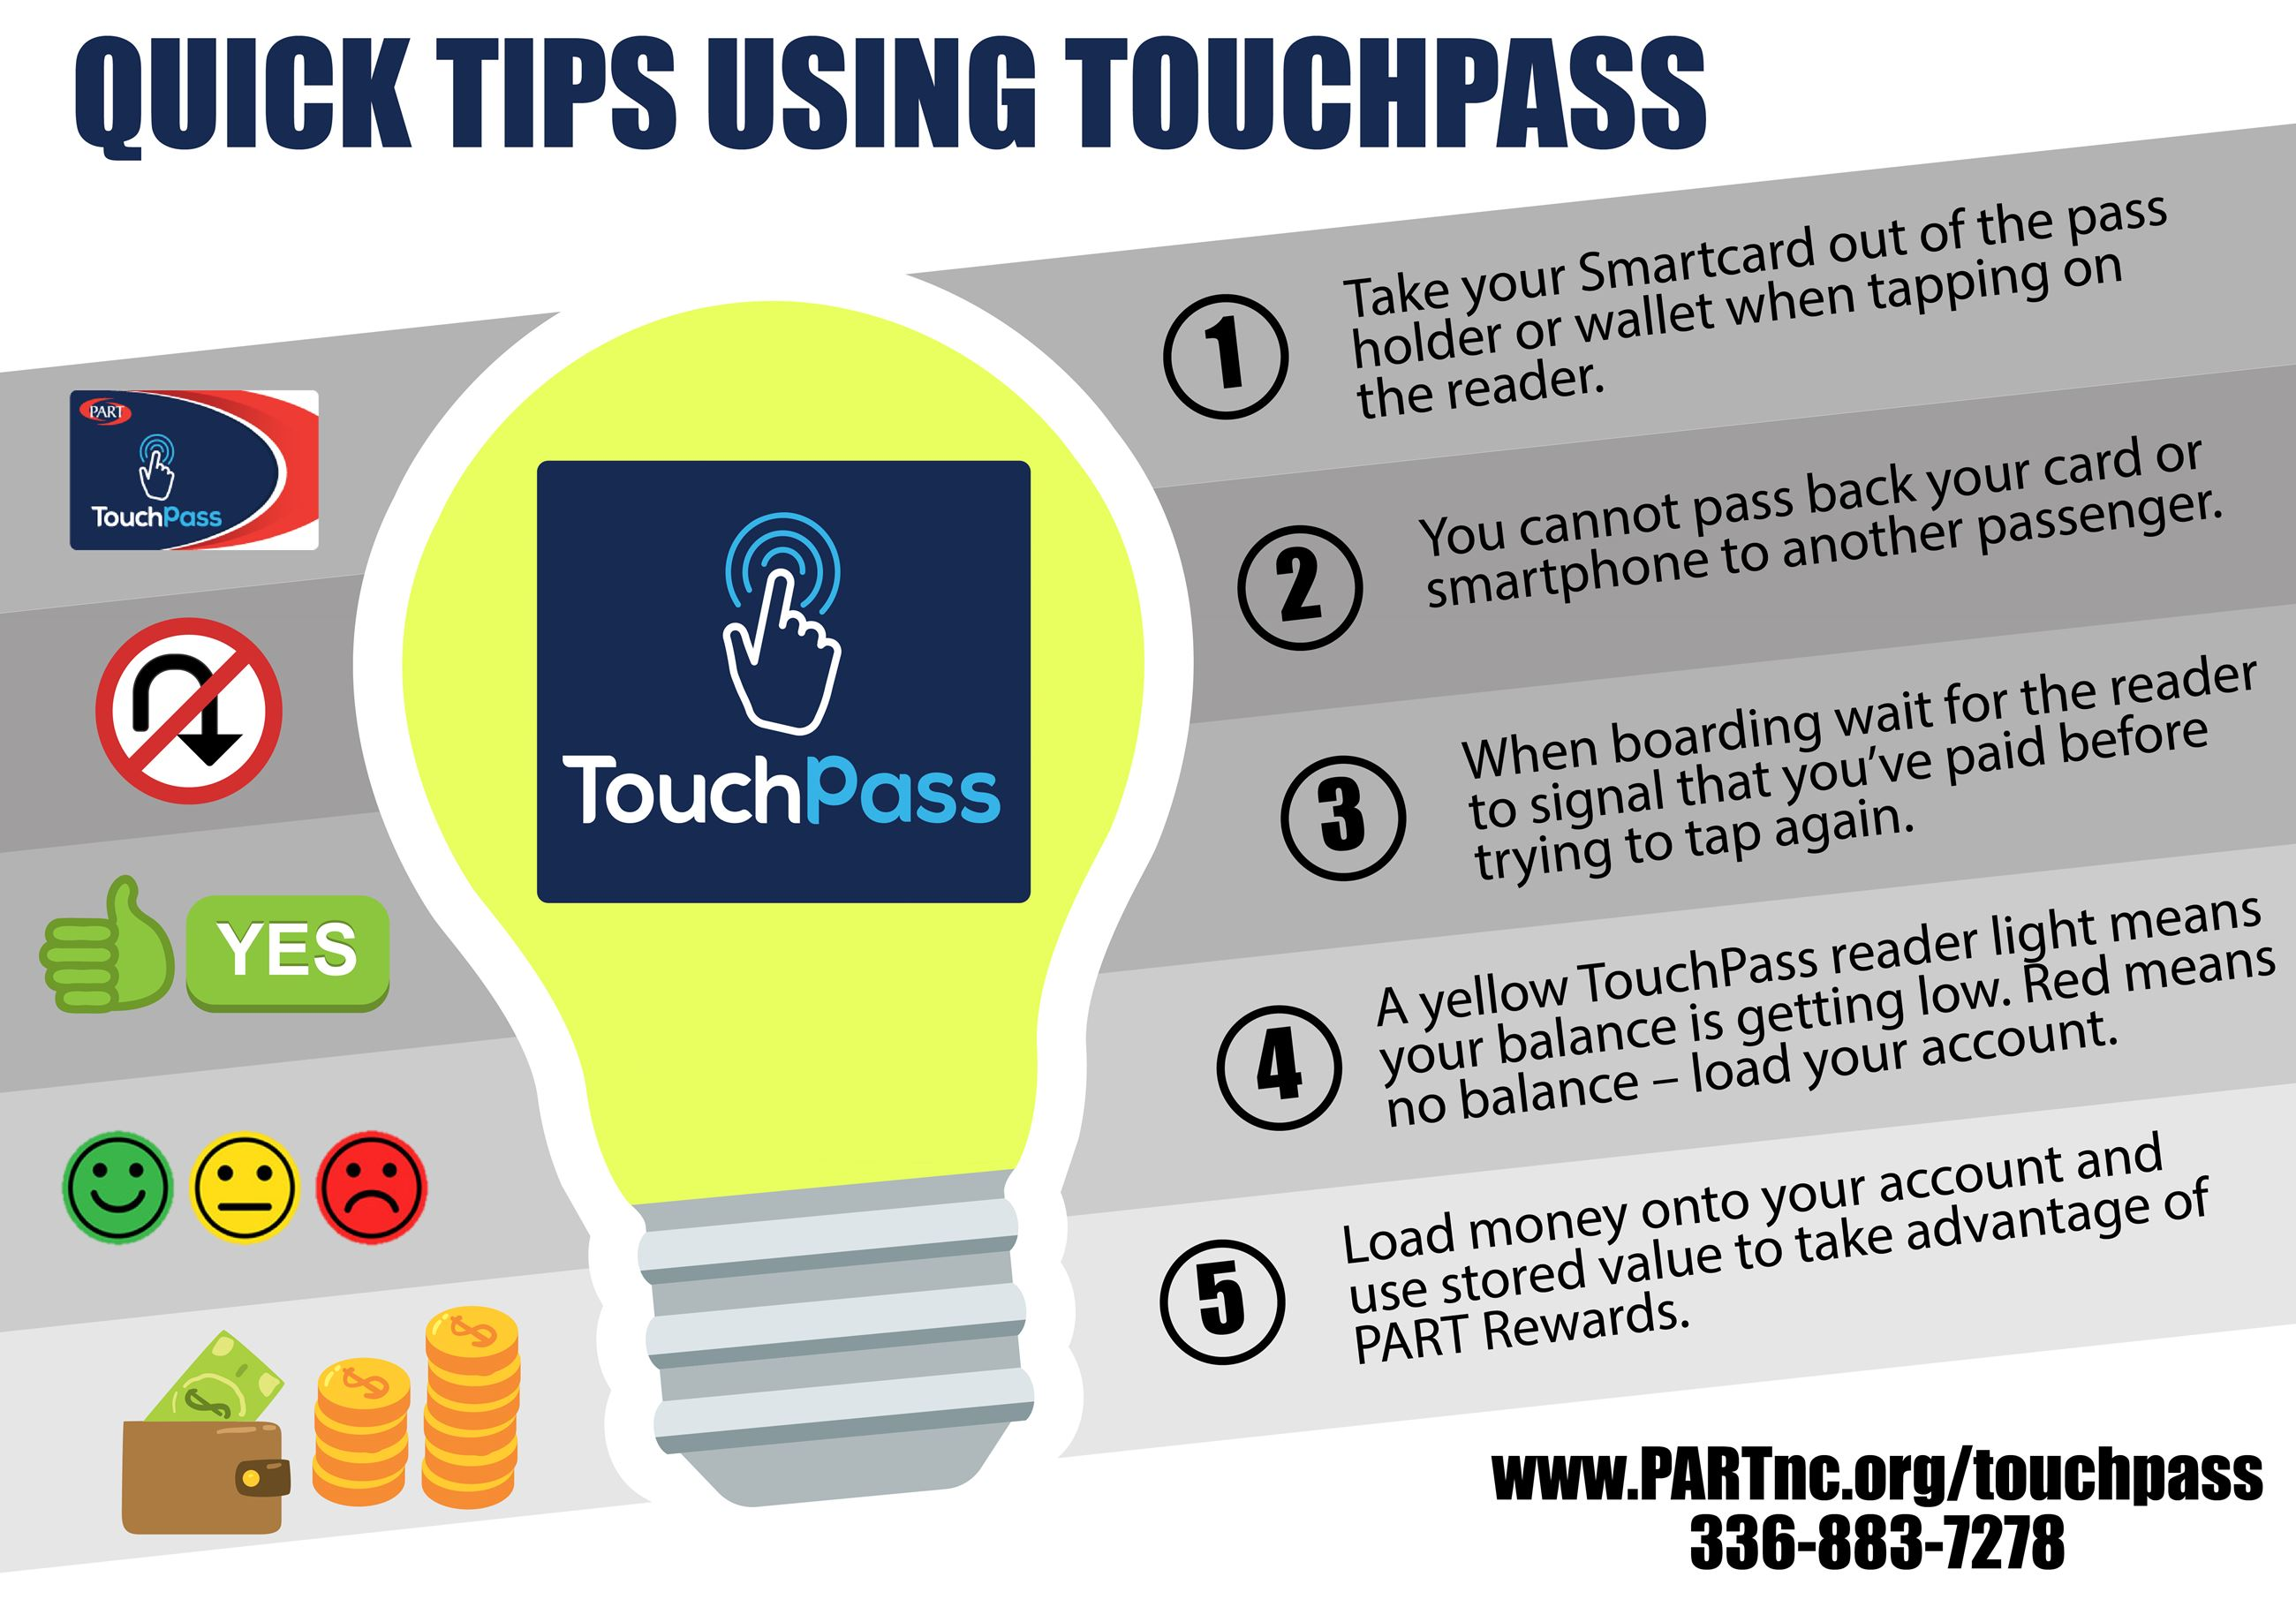 TouchPass Quick Tips2-01